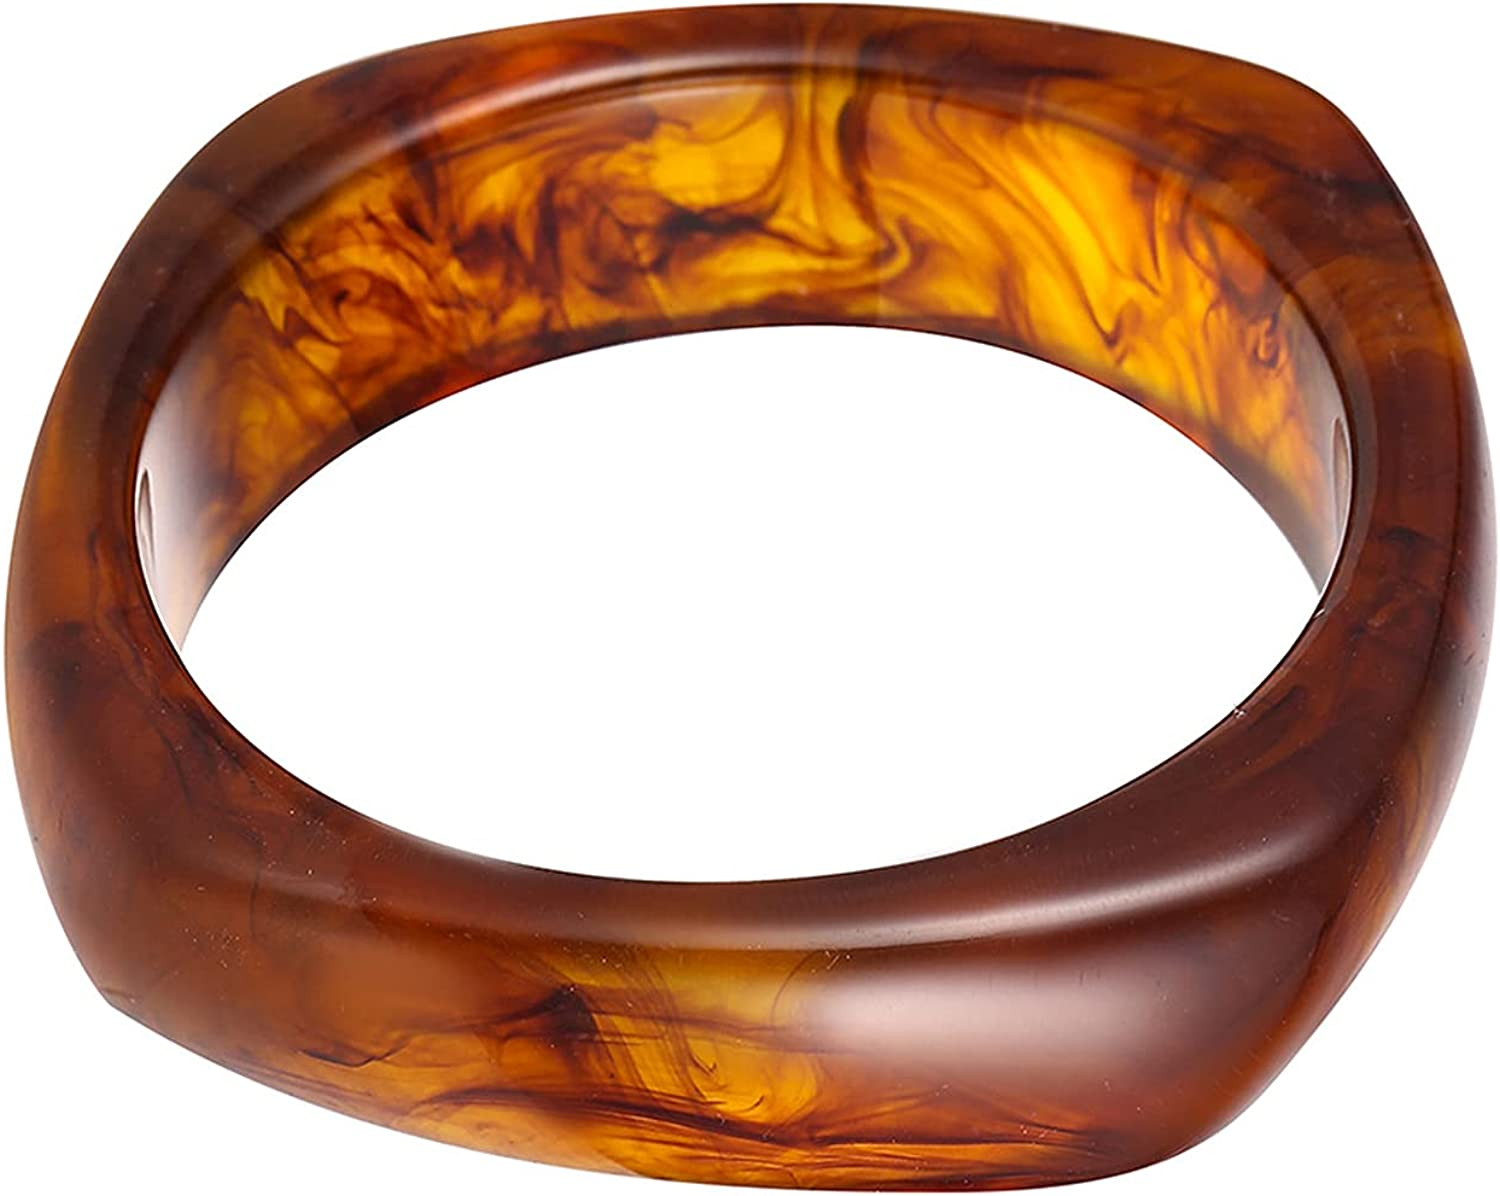 caiyao Natural Colorful Wooden Acrylic Large Round Bangles Wide Irregular Ethnic Wood Chunky Minimalist Cuff Bracelet Vintage Punk Cool Jewelry for Women Girls